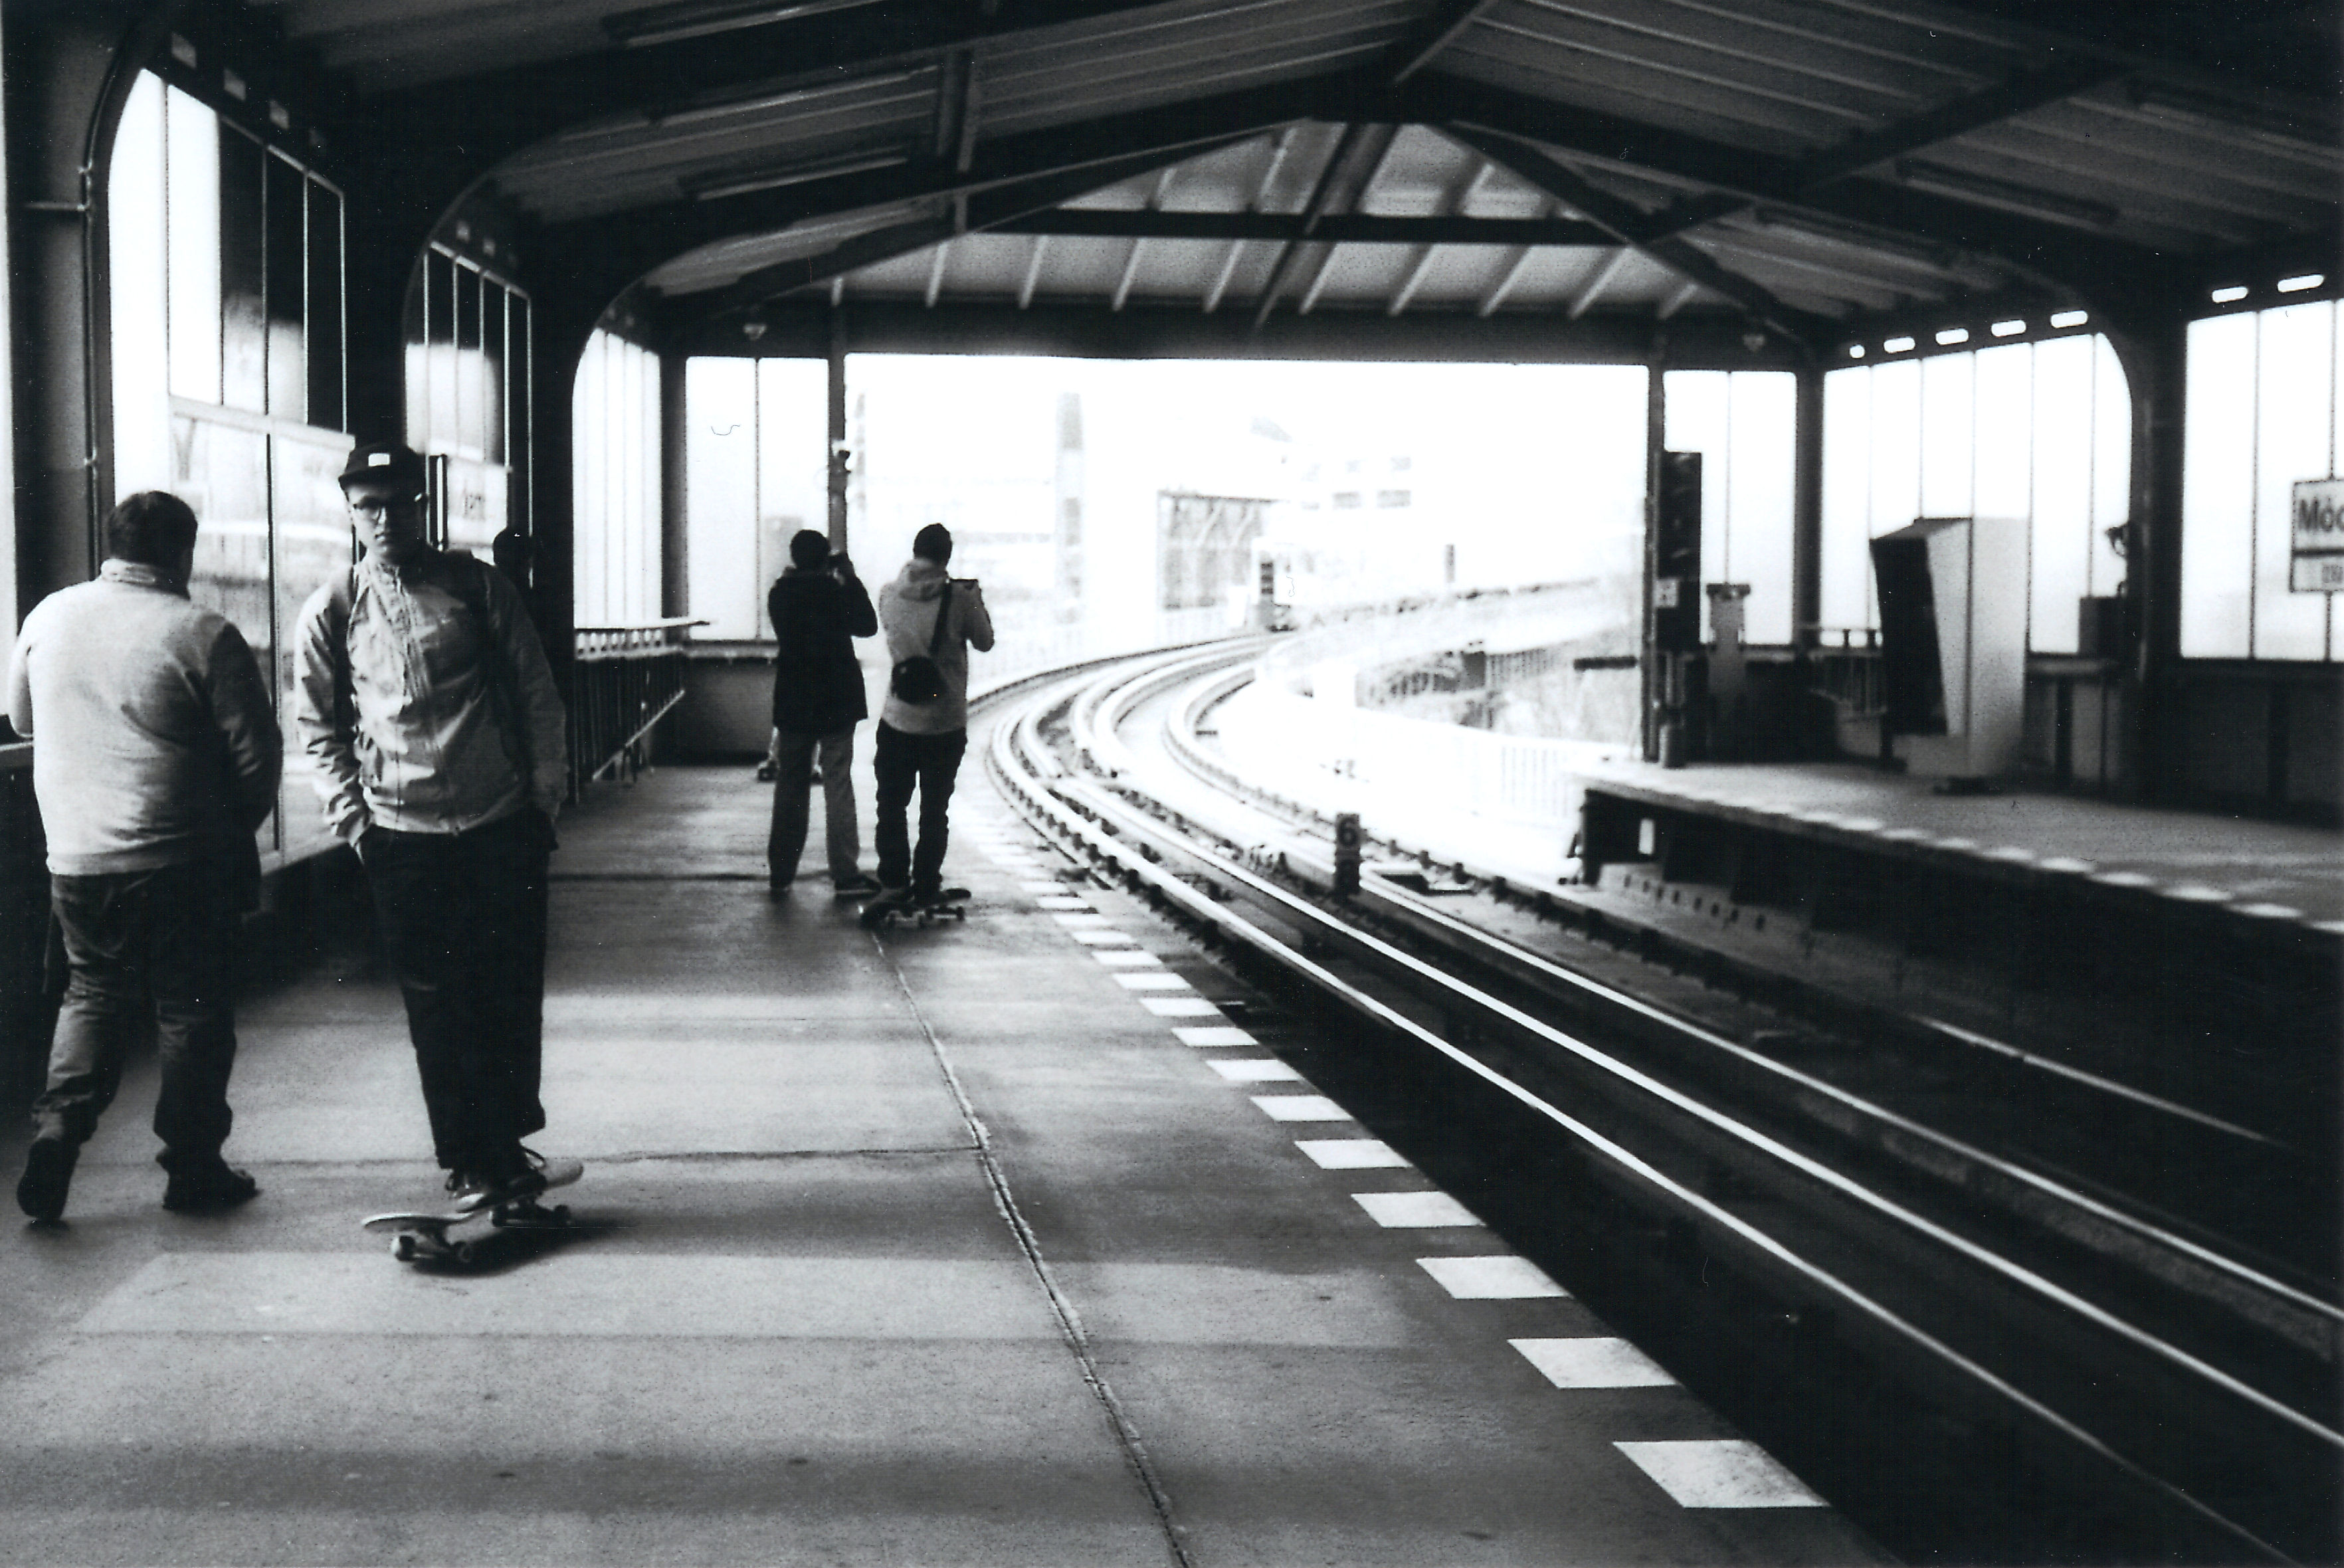 Waiting for the train, 35mm, Blackandwhite, Film, People, HQ Photo